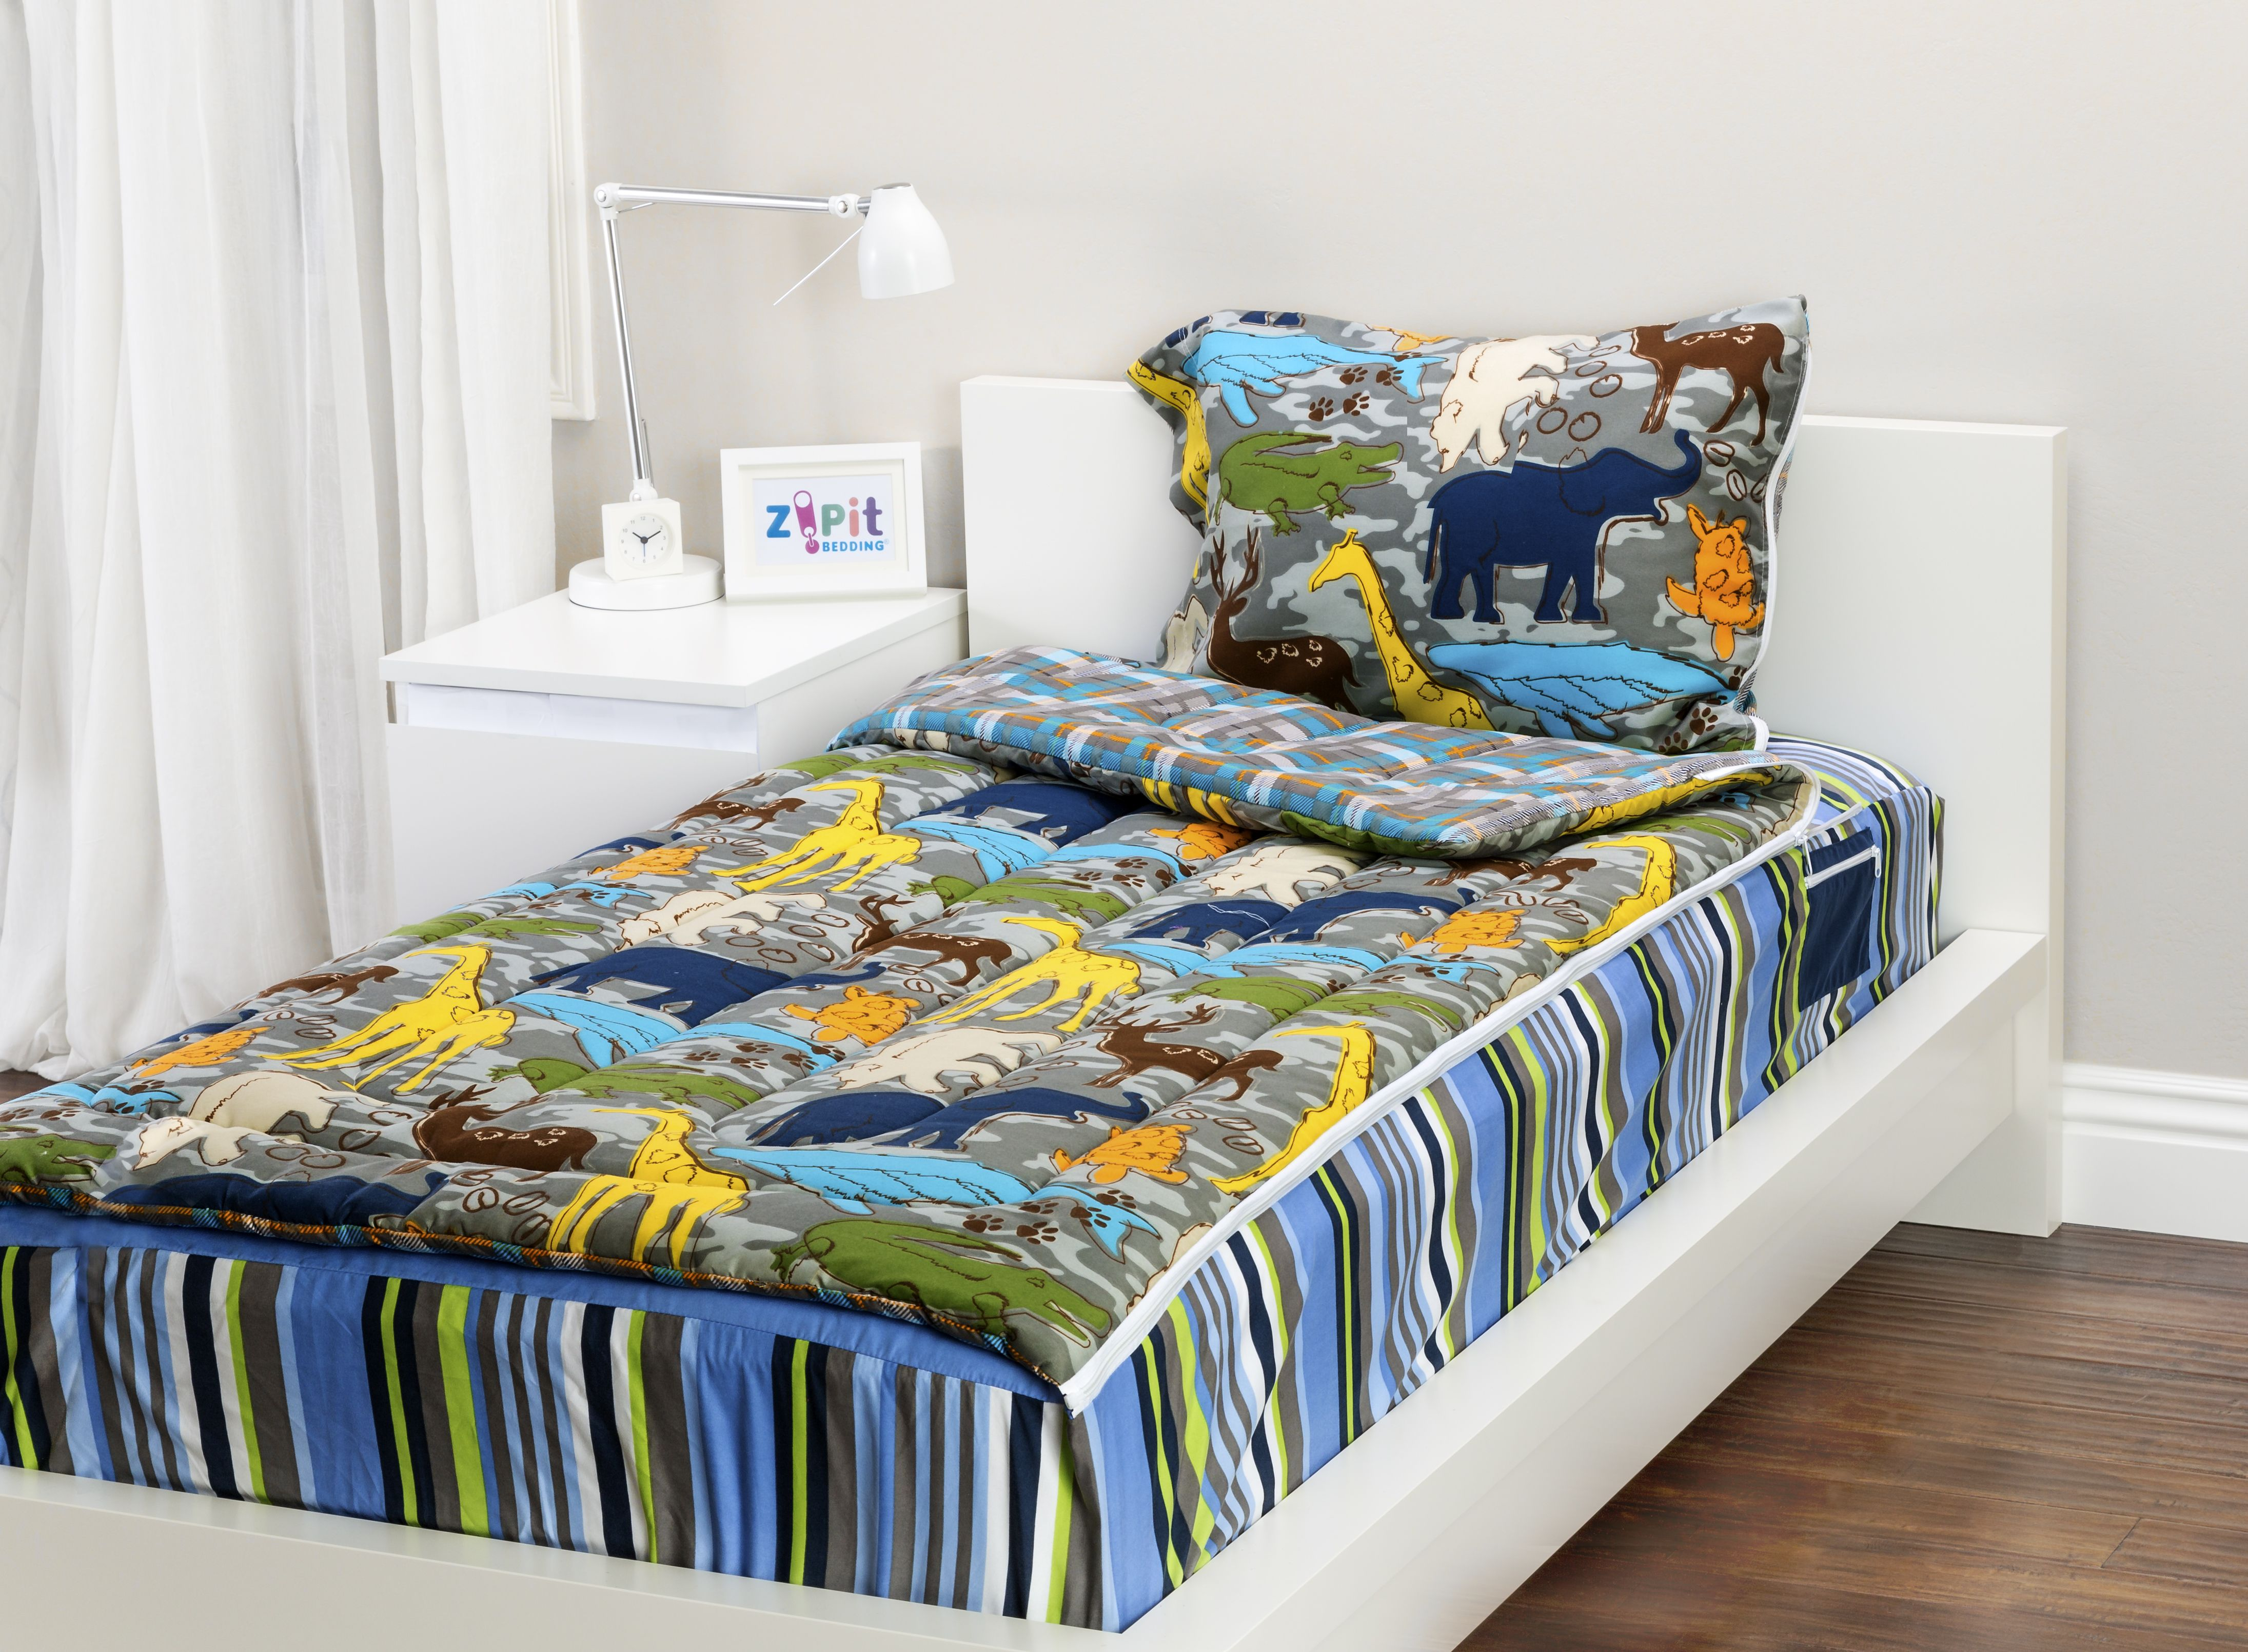 Zipit Bedding Mix 'N Match Wild Animals with Outer Space